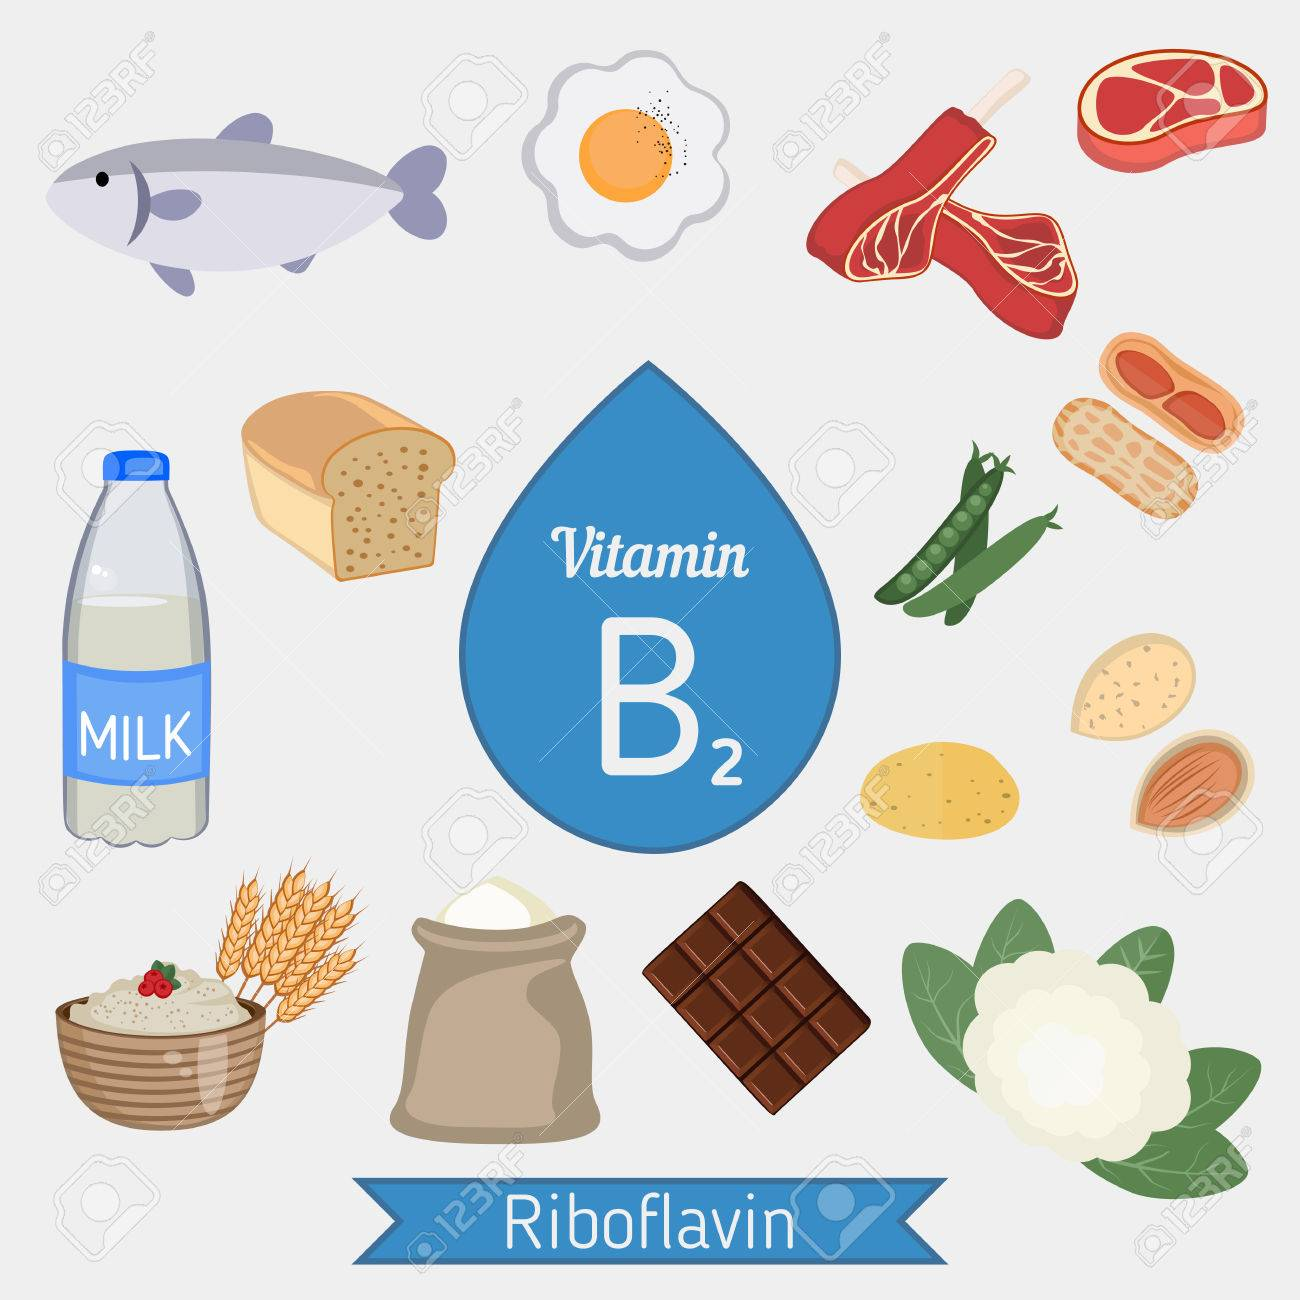 how to get riboflavin in your diet